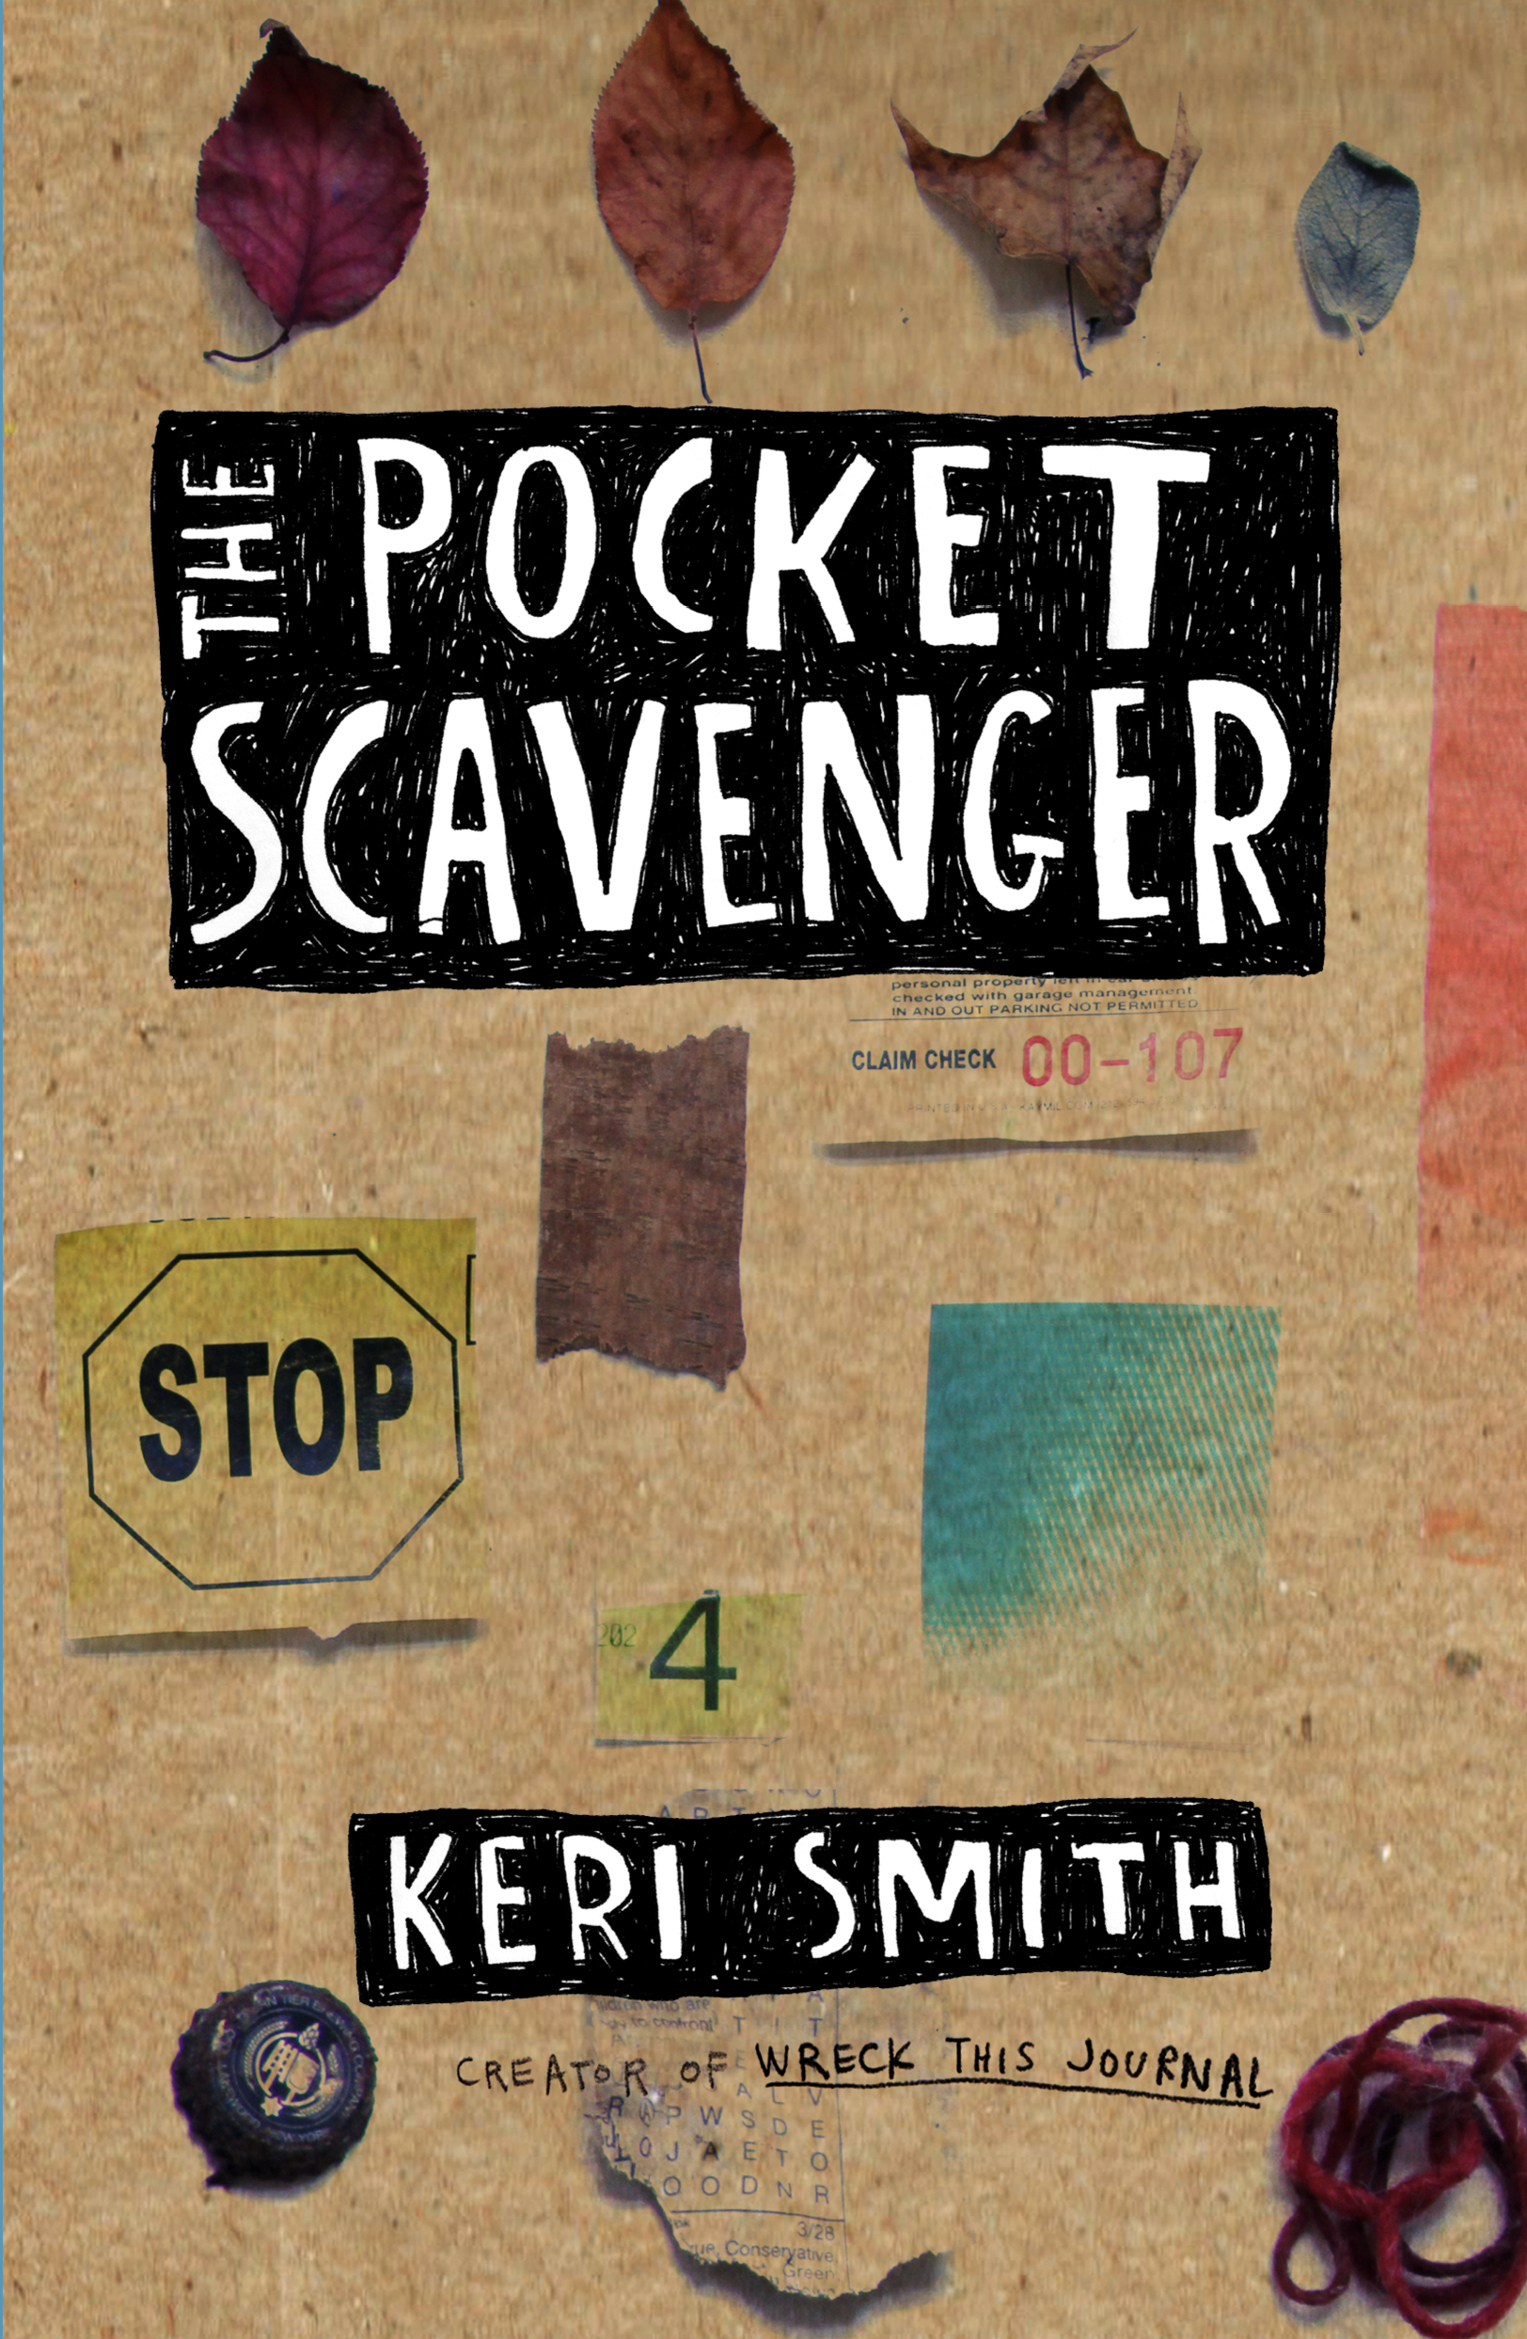 The Pocket Scavenger by Keri Smith, ISBN: 9781846147098